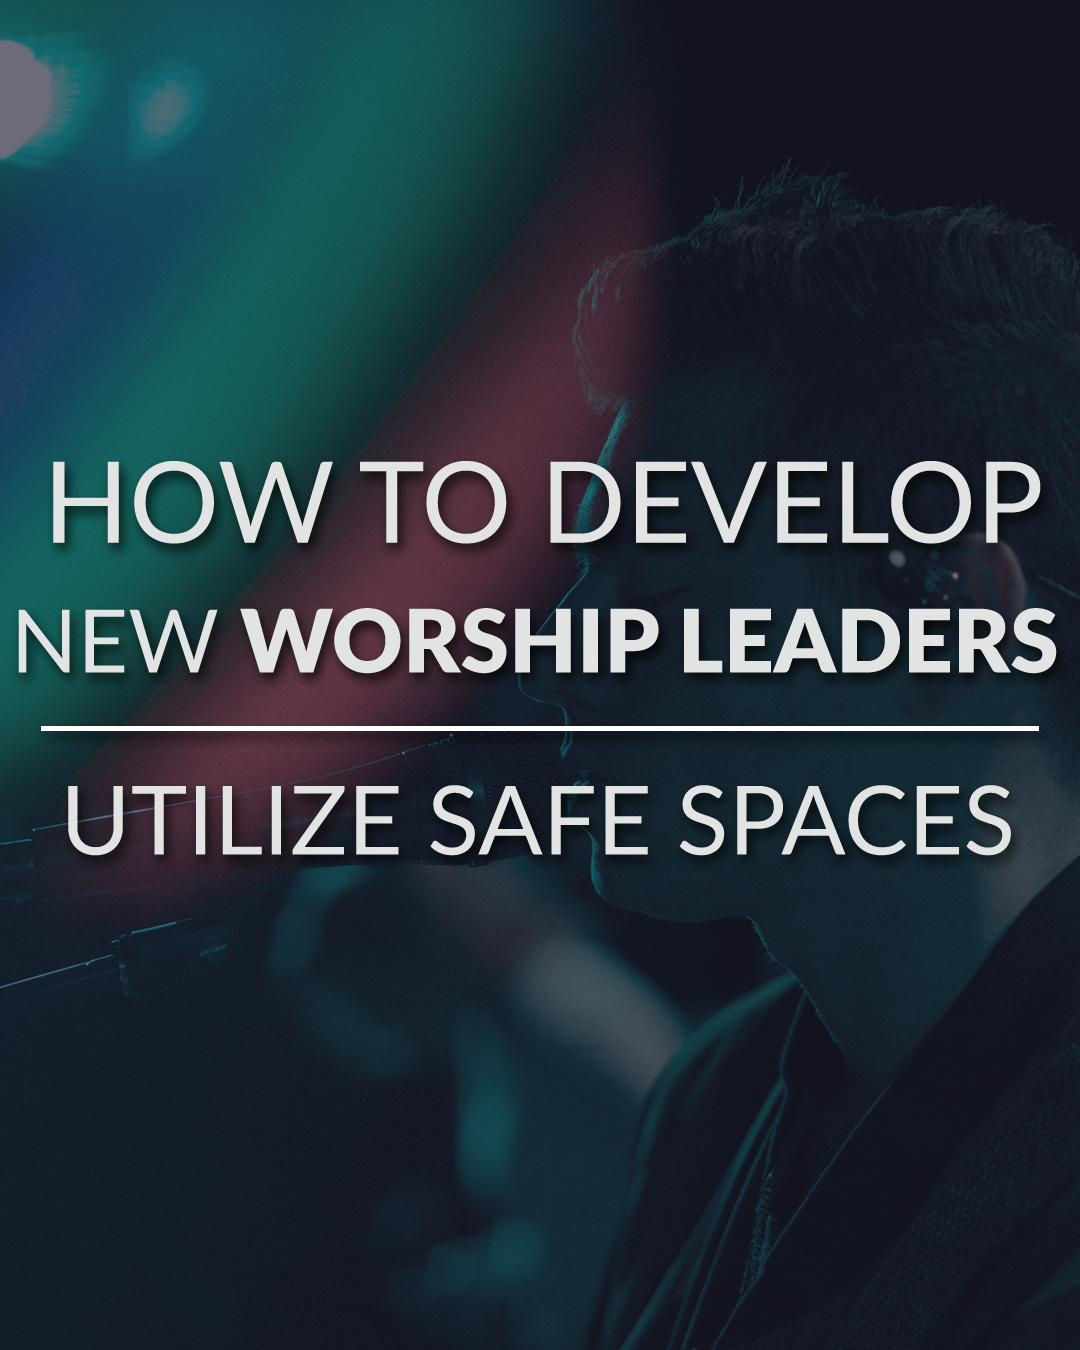 How to develop new worship leaders